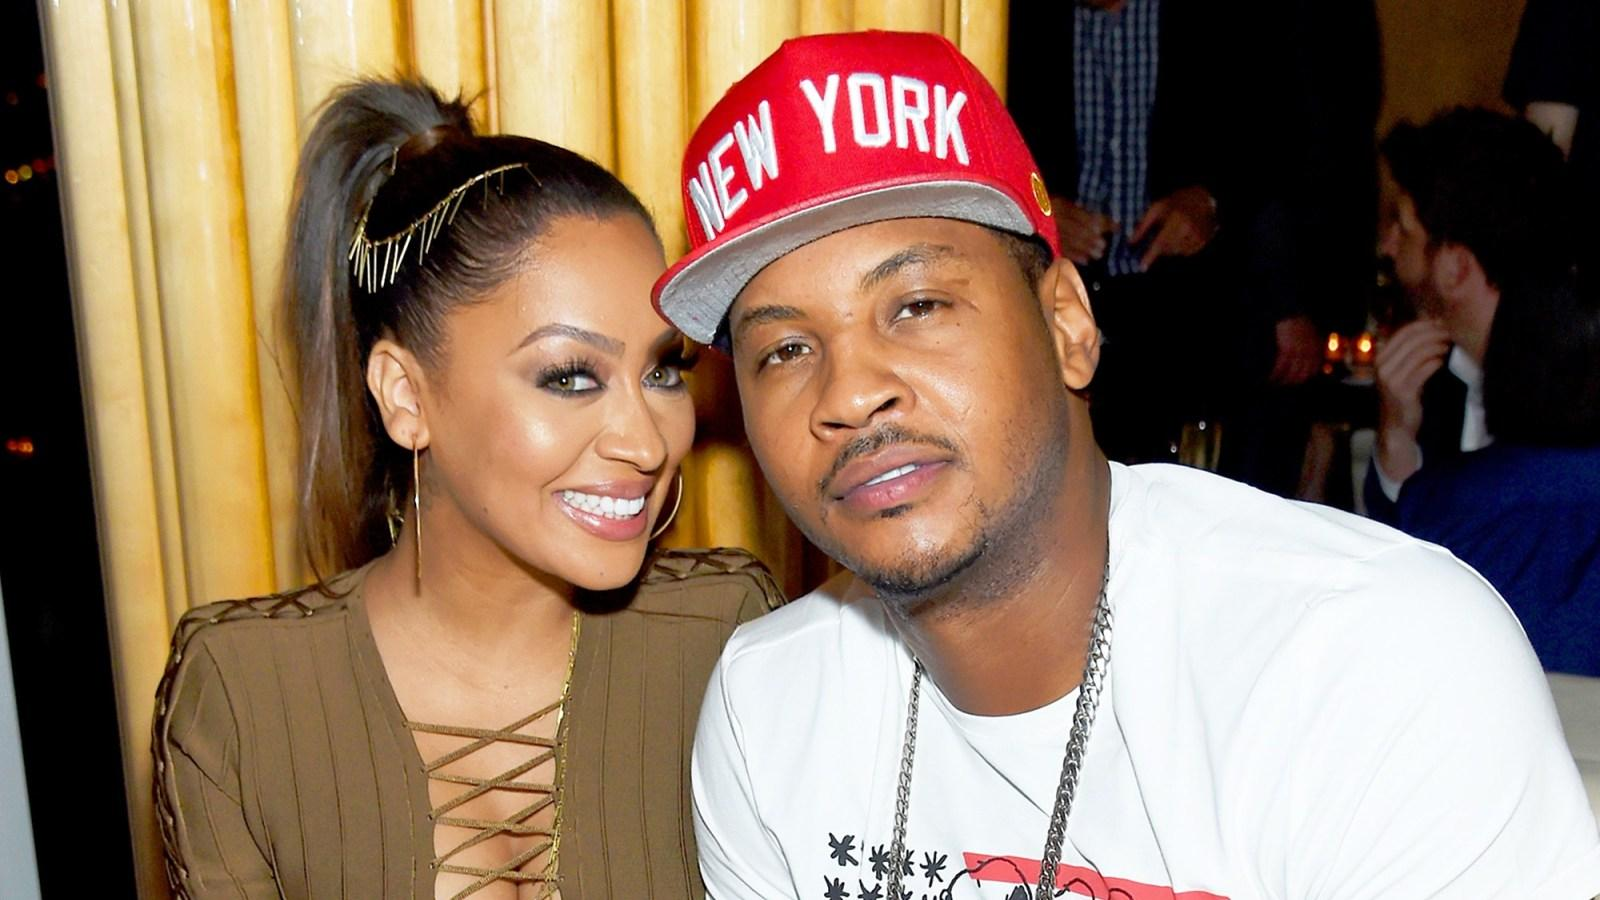 La La Anthony Confirms She's Making Moves To Be Legally Separated From Carmelo Anthony